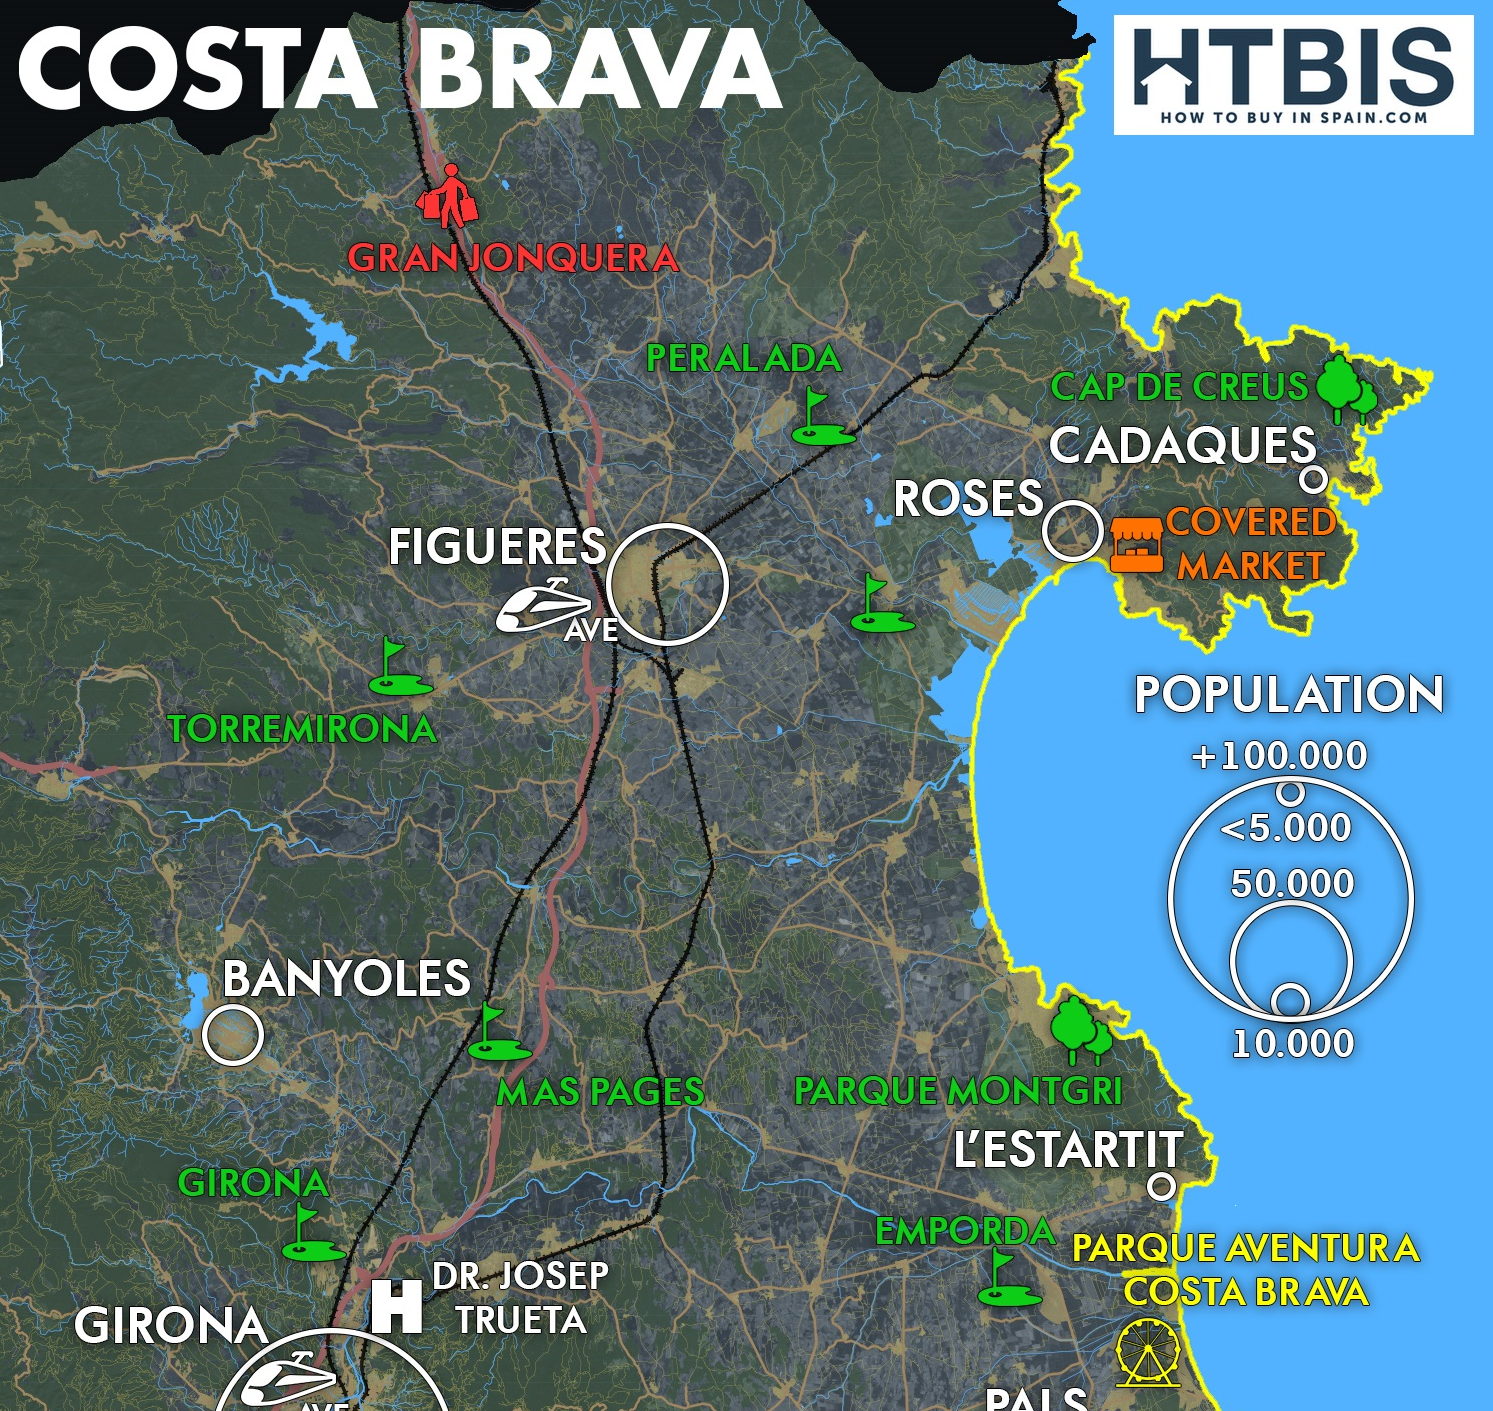 Everything you should know on the Costa Brava, check our infographic